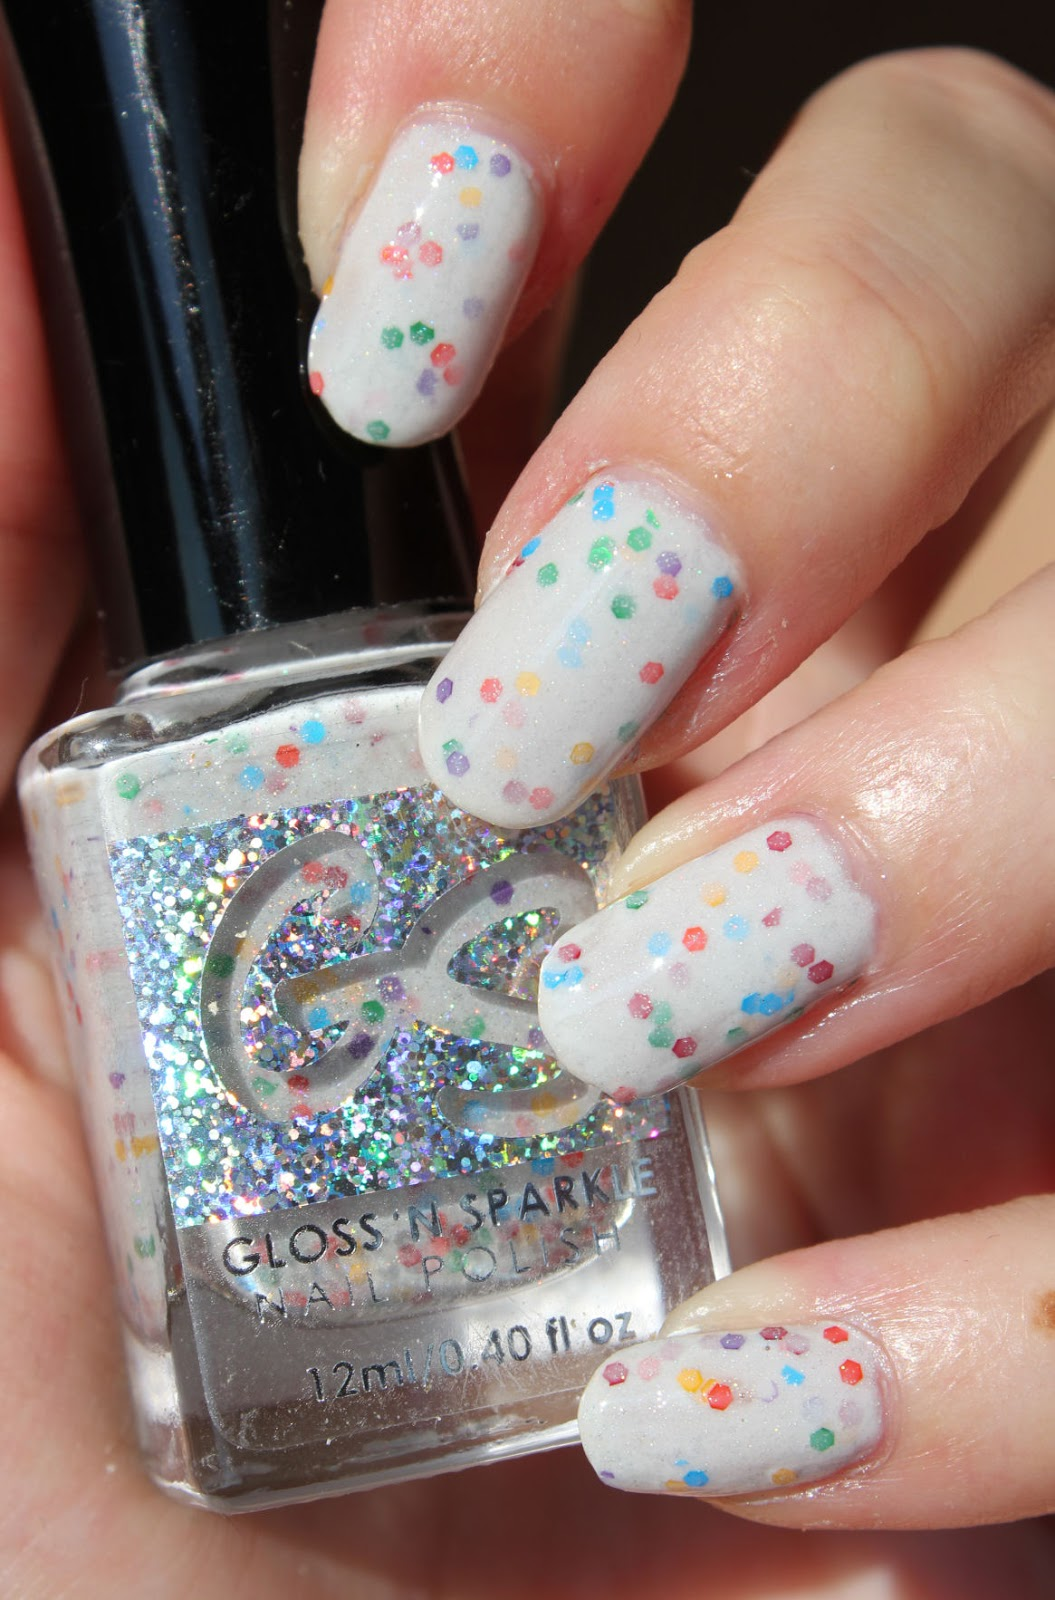 http://lacquediction.blogspot.de/2014/11/glossn-sparkle-unicorn-droppings.html